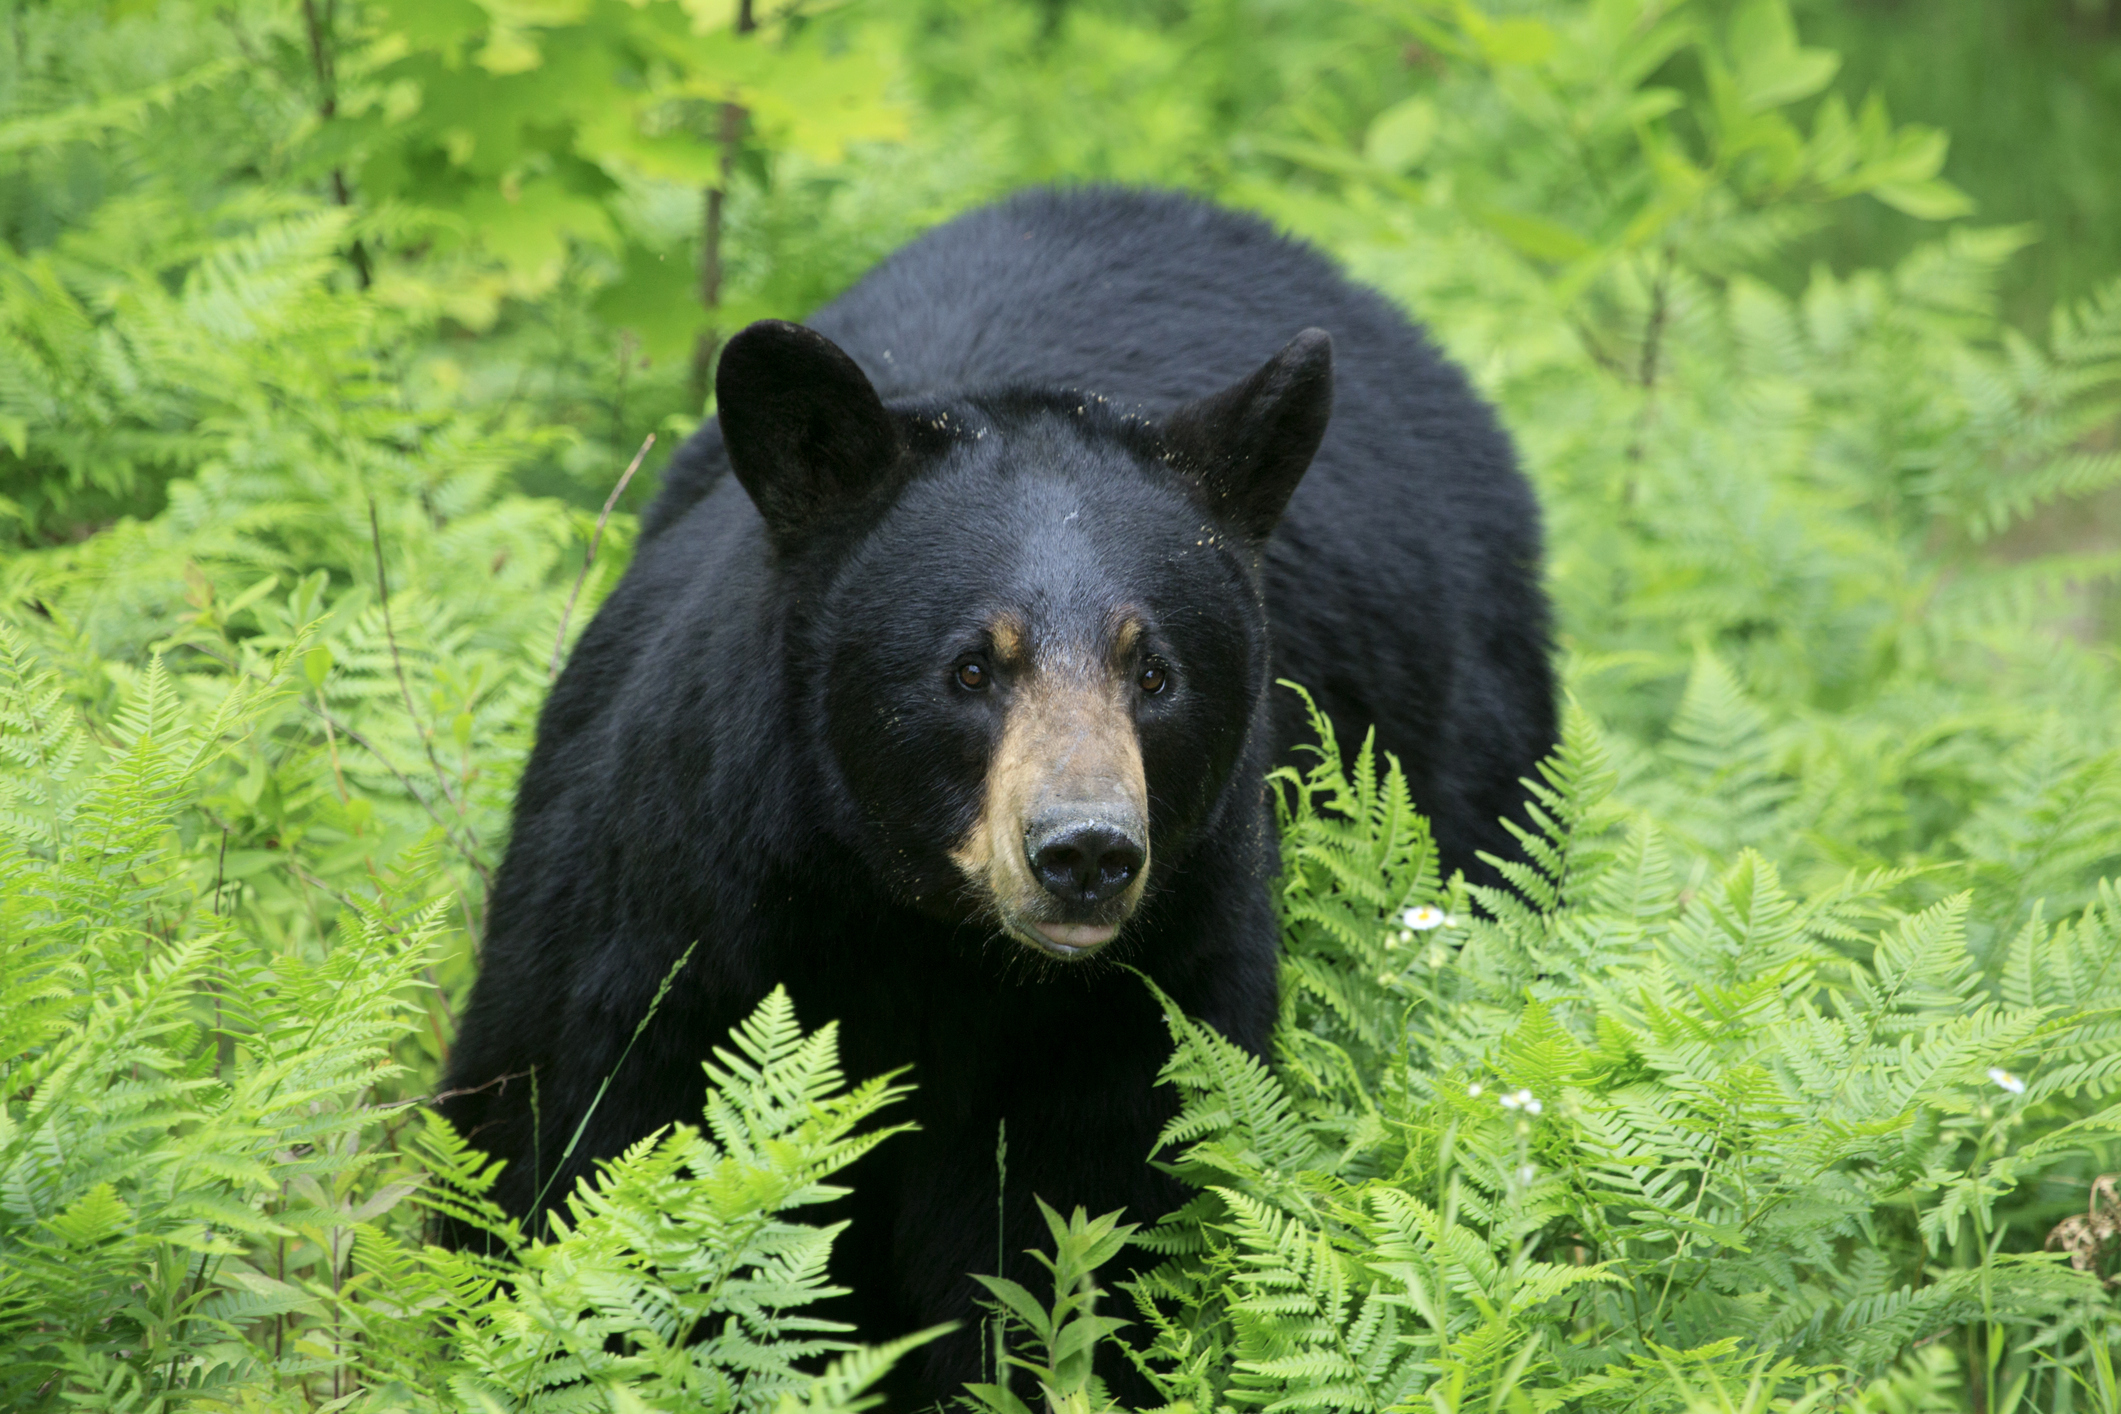 New Jersey's Black Bear Hunt Gets Underway For Archers